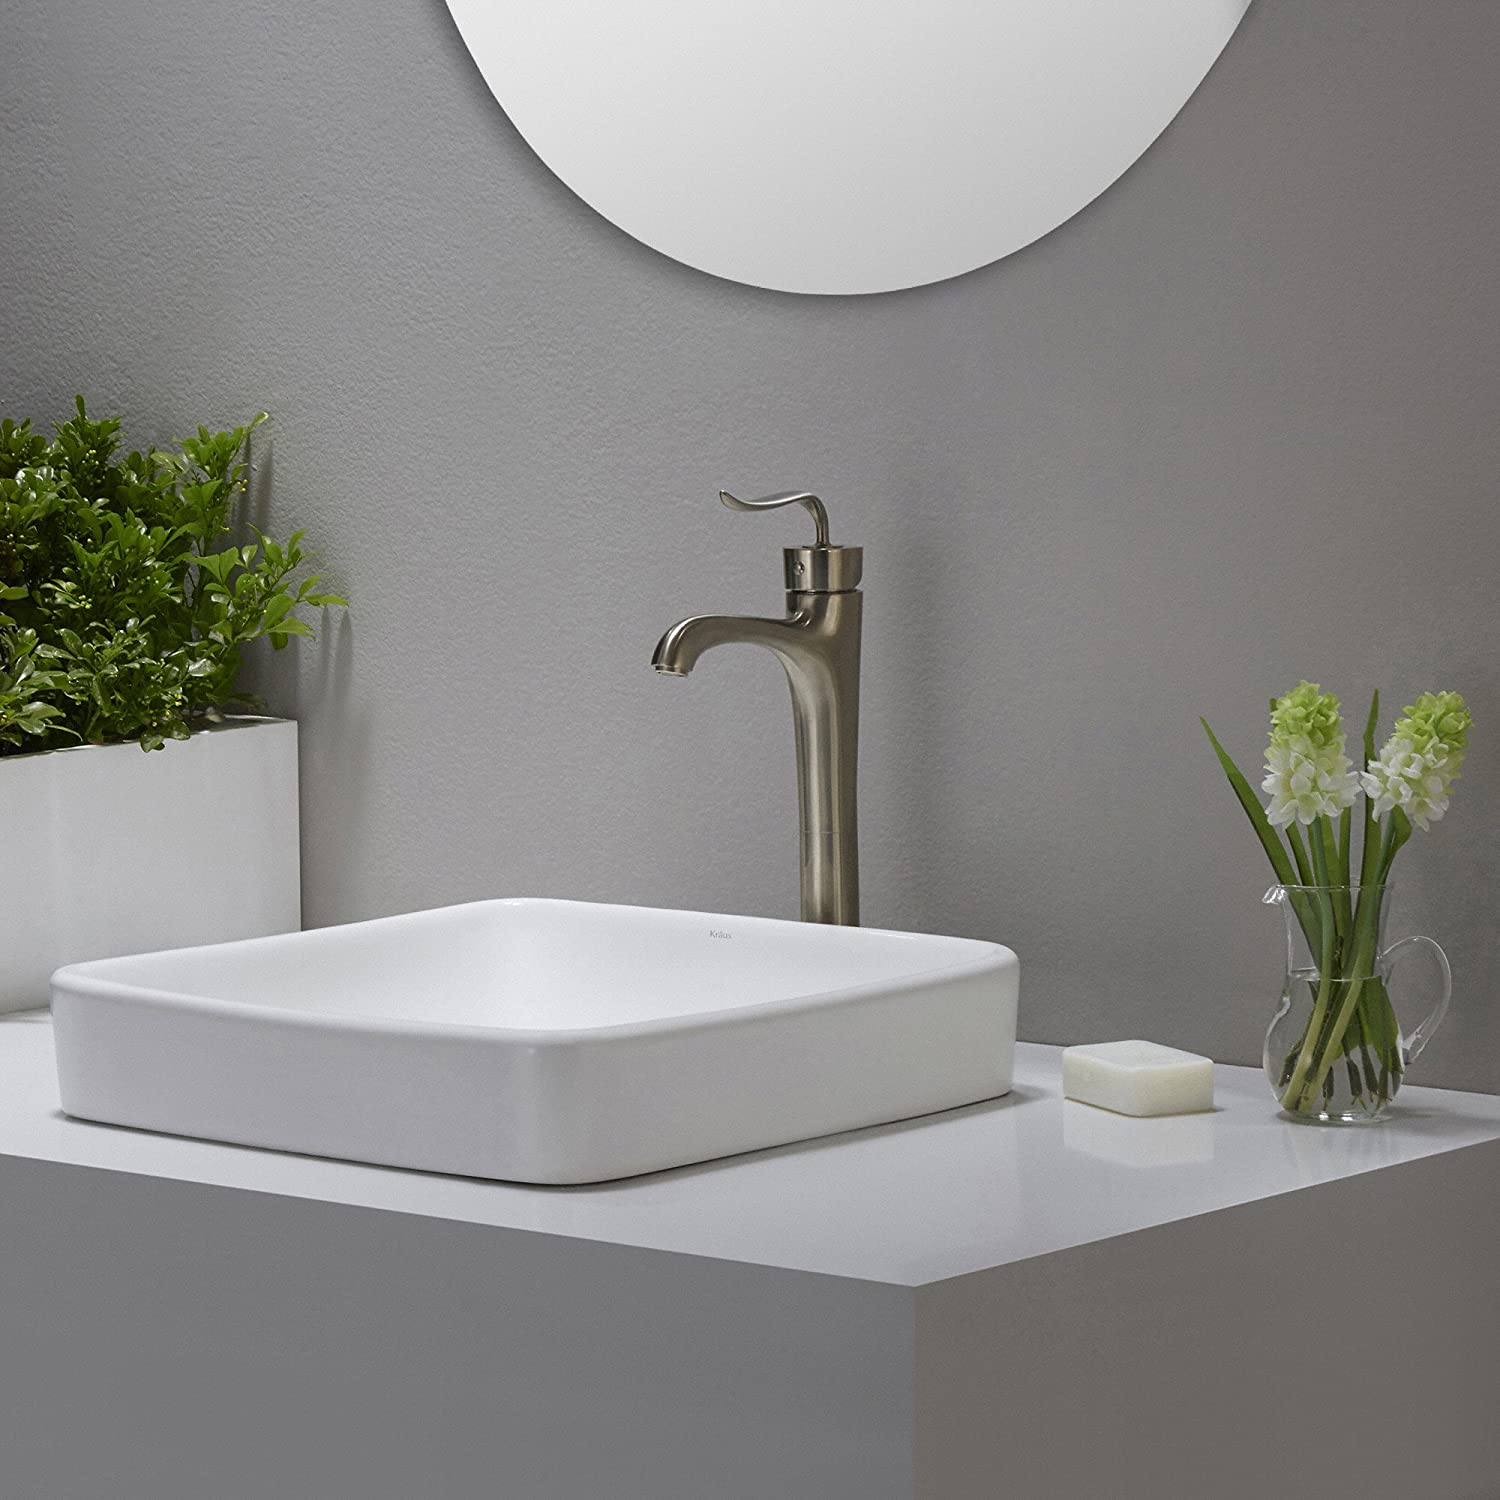 kraus kcr281 modern elavo ceramic square bathroom sink with overflow white amazoncom